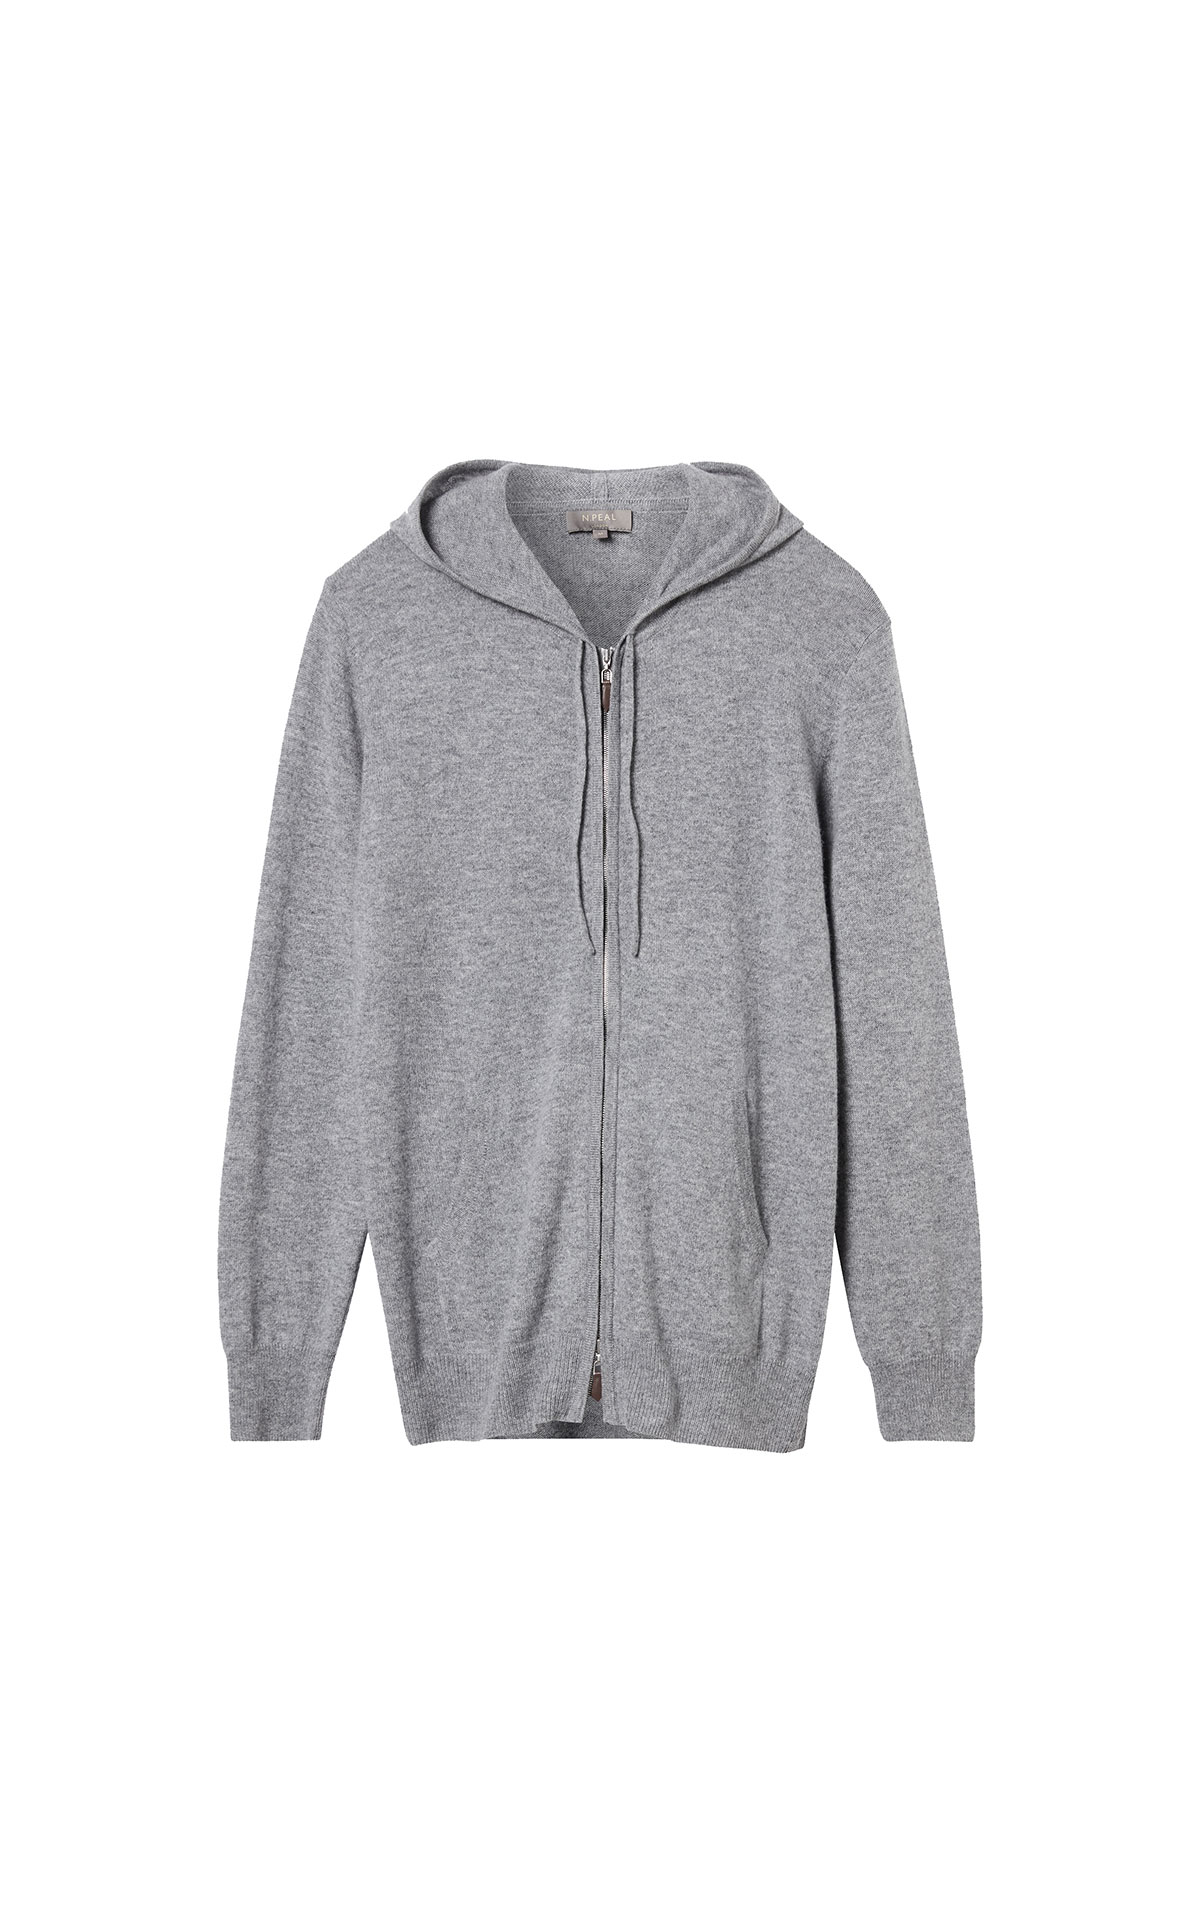 N.Peal Hooded Zipped Top from Bicester Village